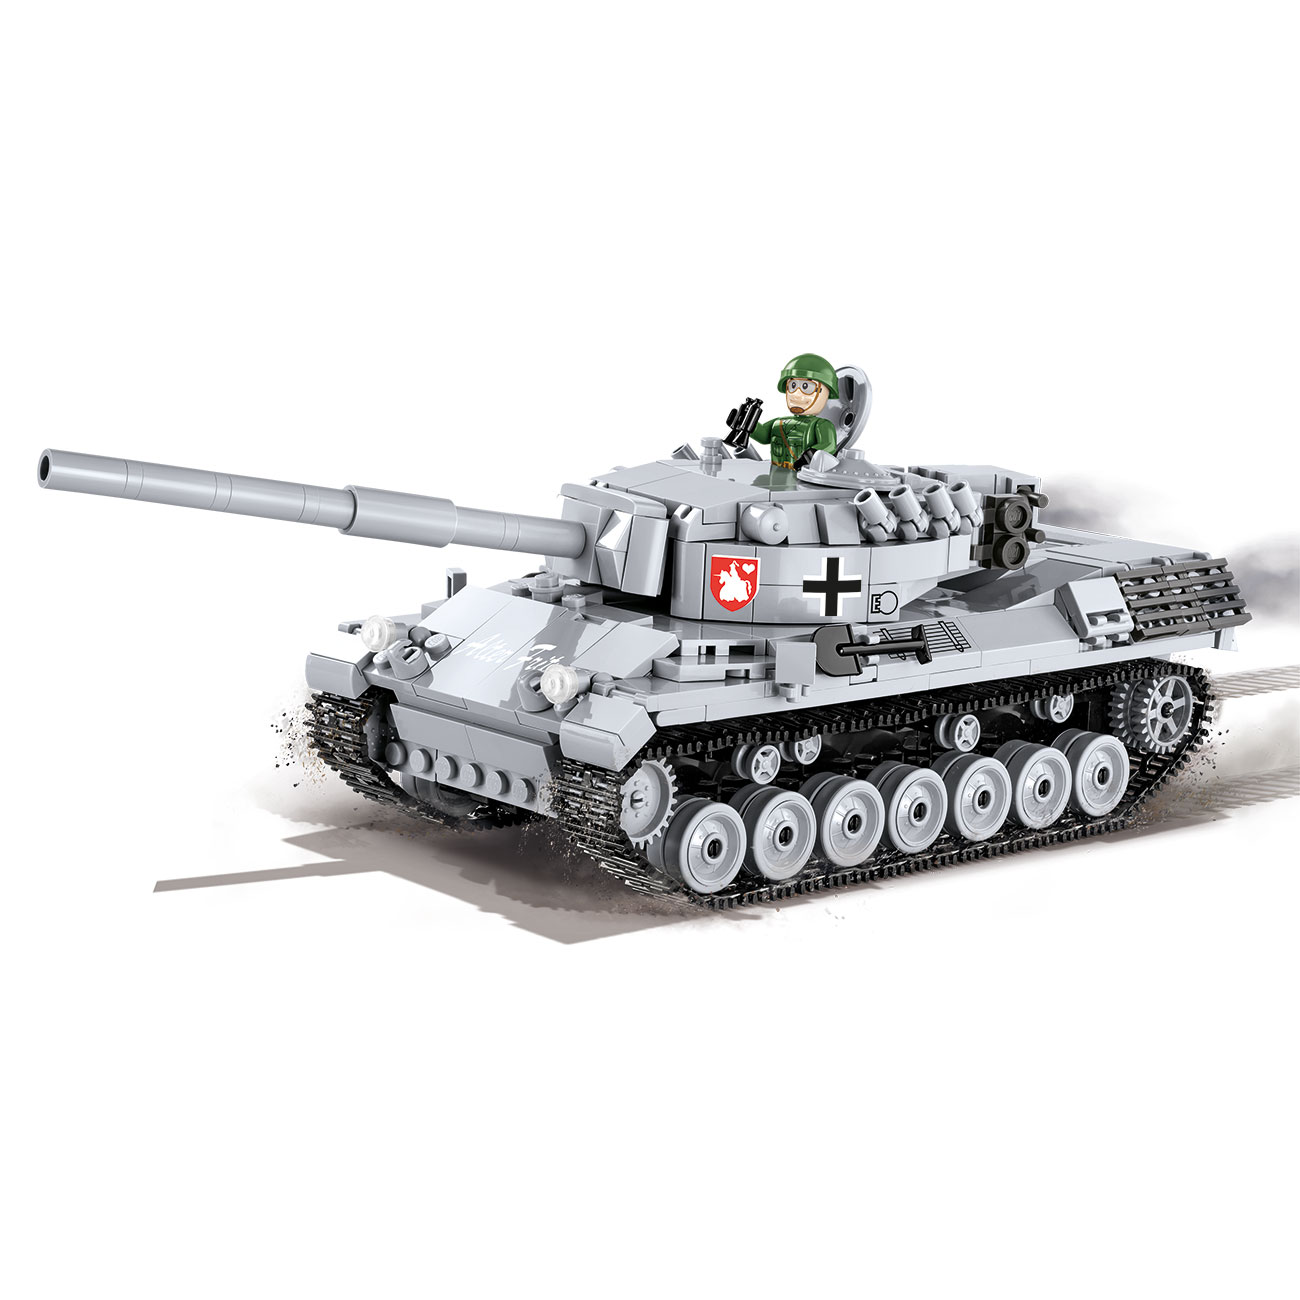 Cobi World Of Tanks Small Army Bausatz Panzer Leopard I 600 Teile 3037 0